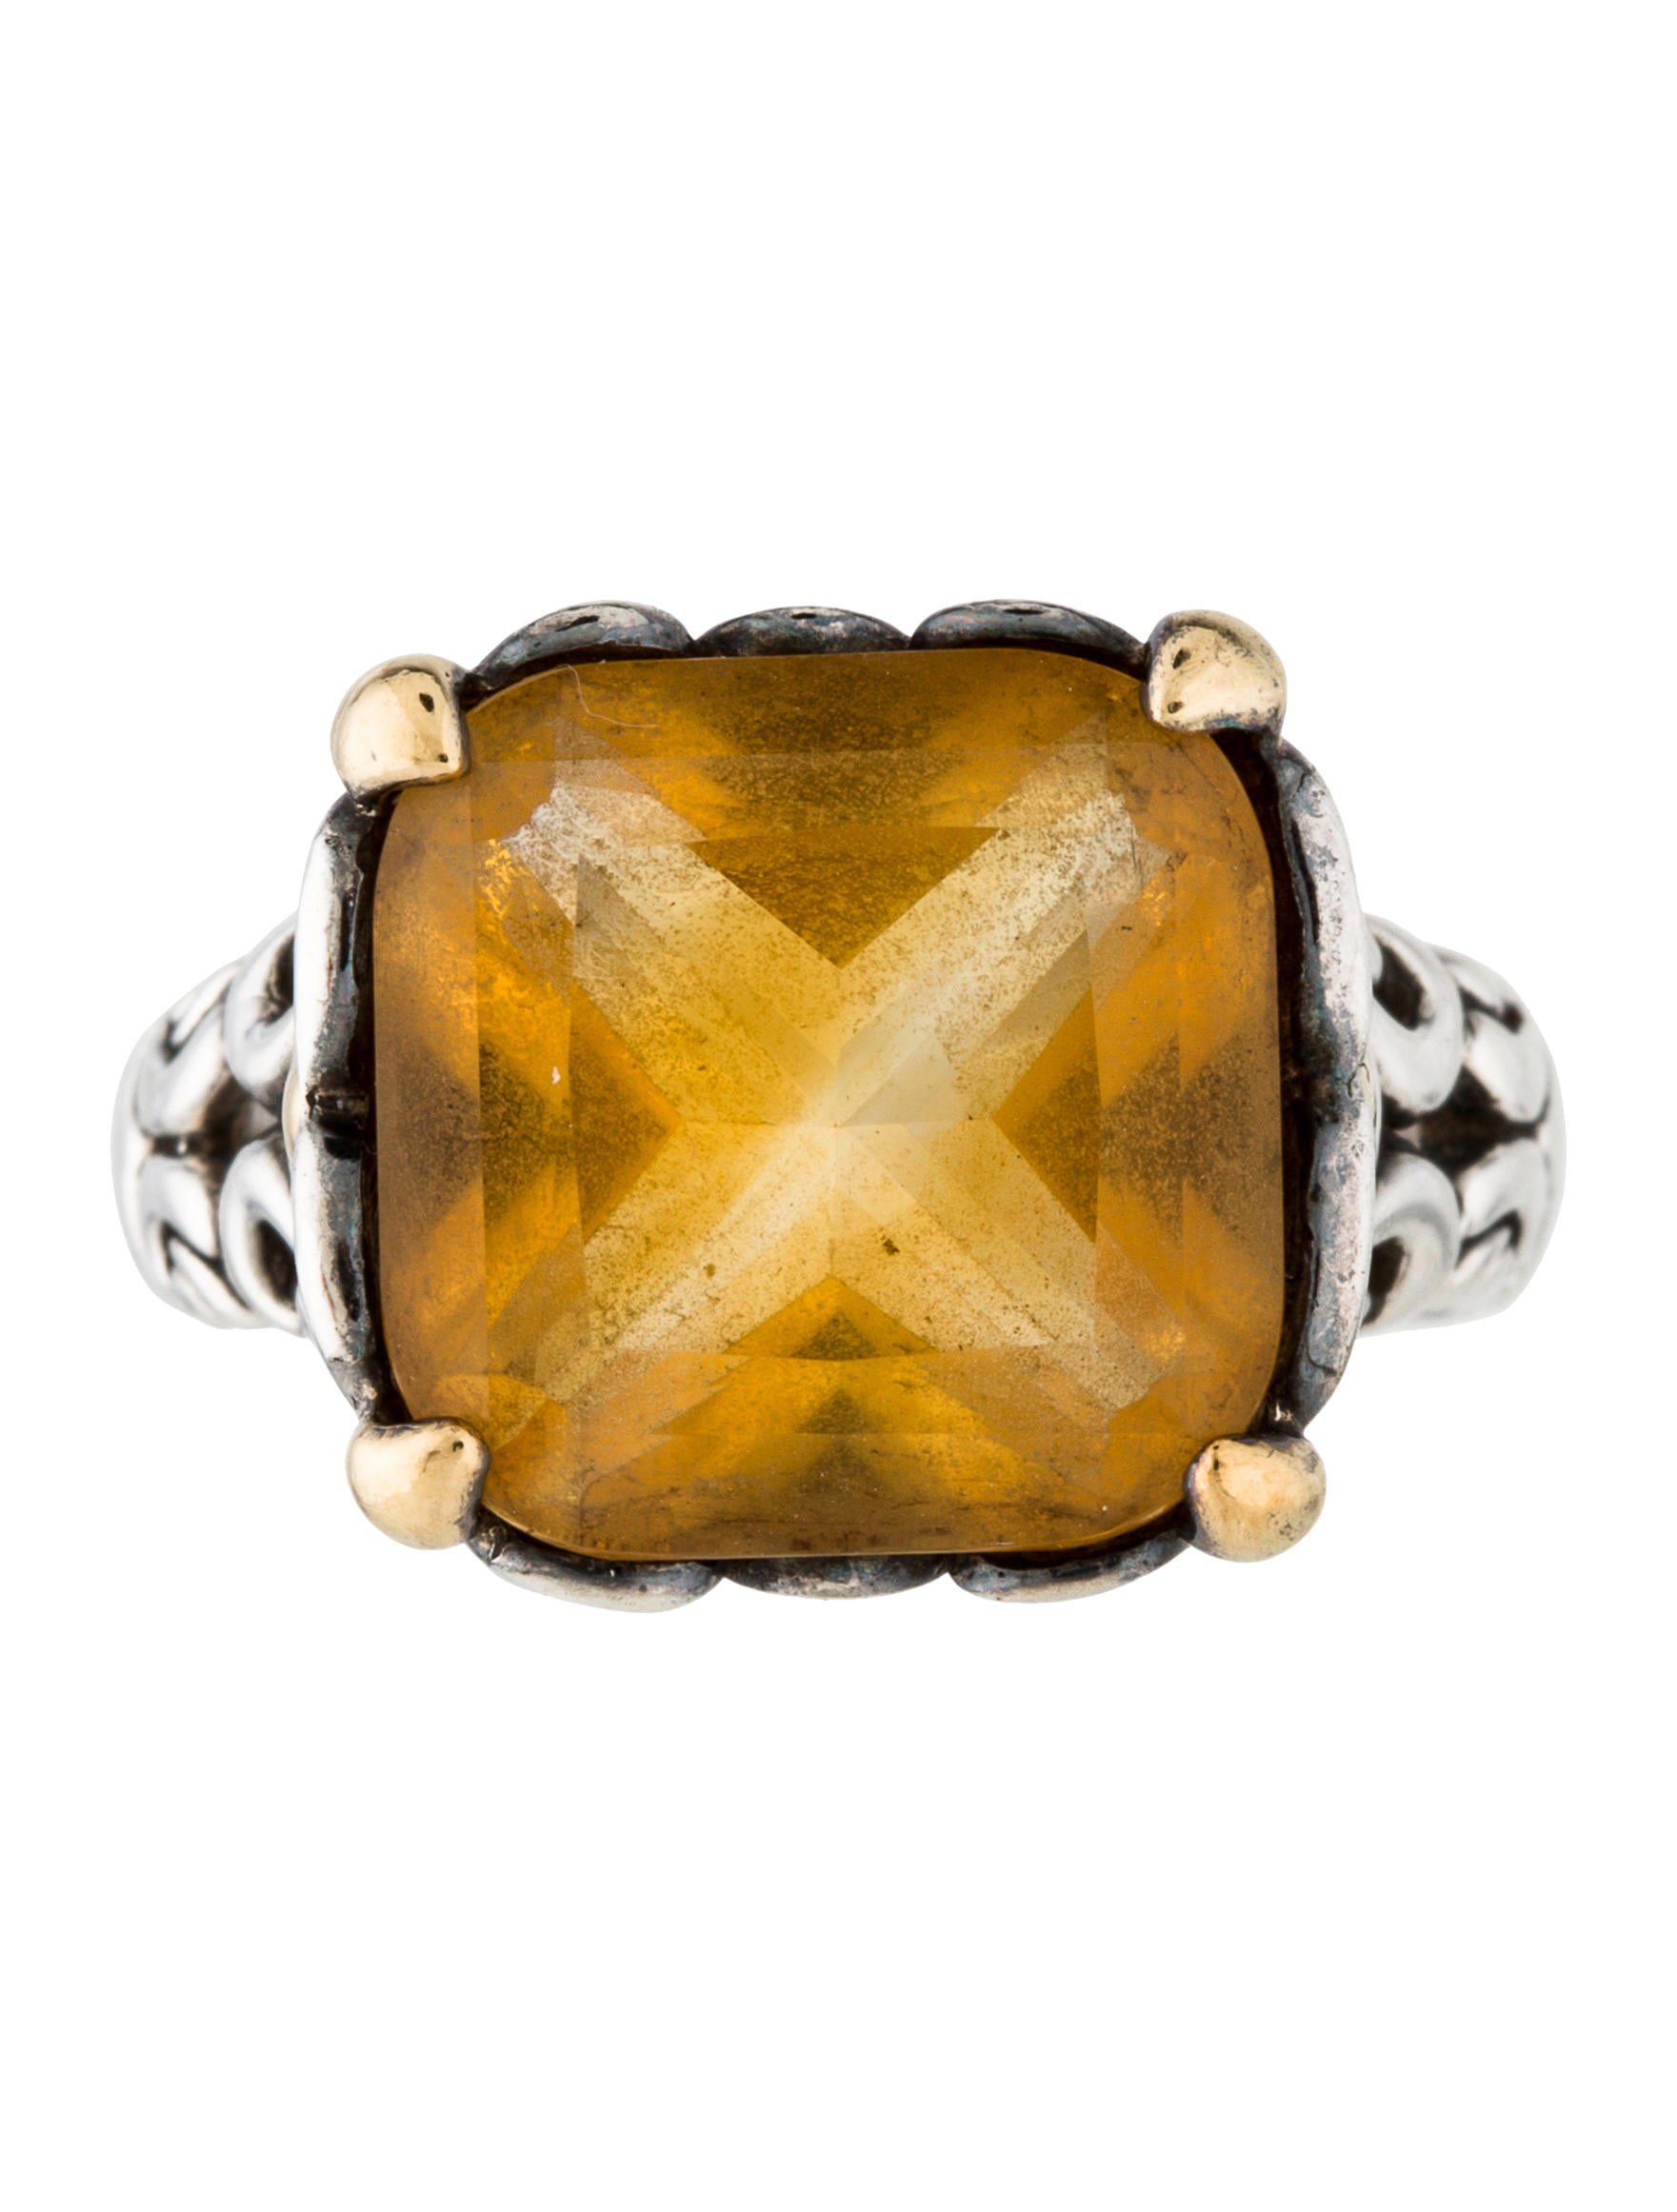 john hardy citrine cocktail ring rings jha27183 the